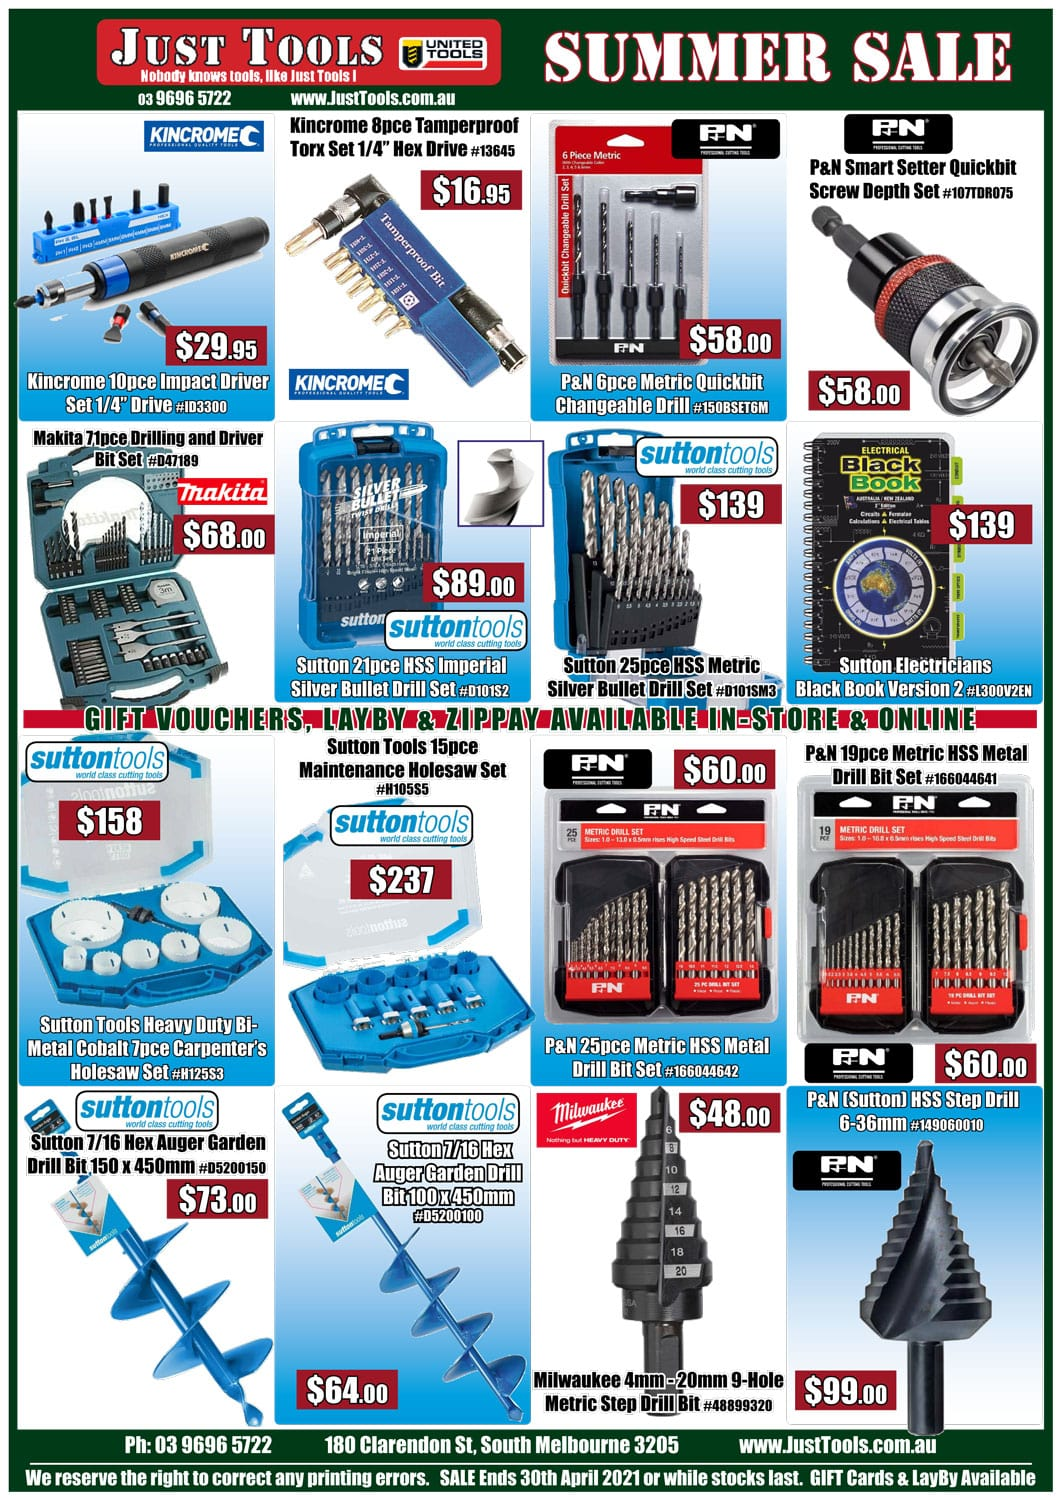 just-tools-summer-sale-page-4b-min.jpg